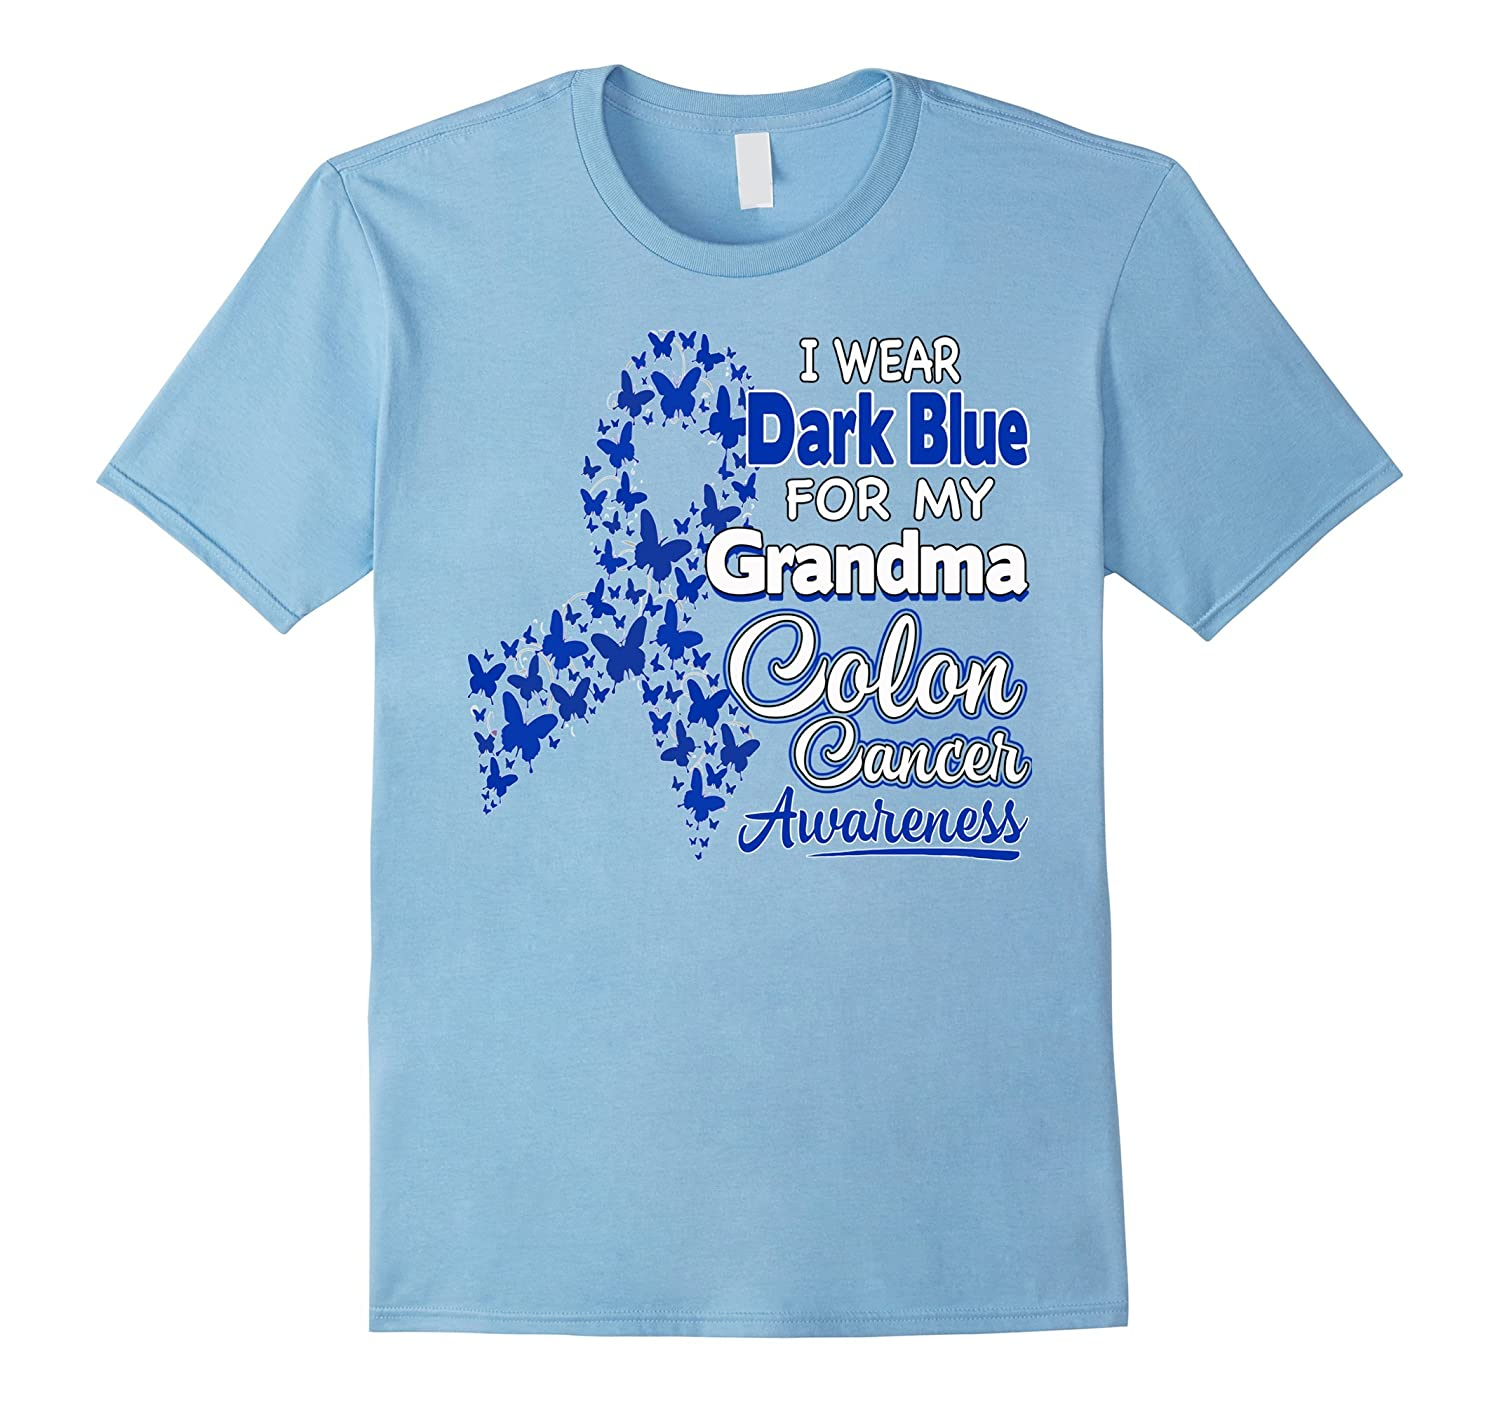 I Wear Dark Blue For My Grandma - Colon Cancer Awareness-CD